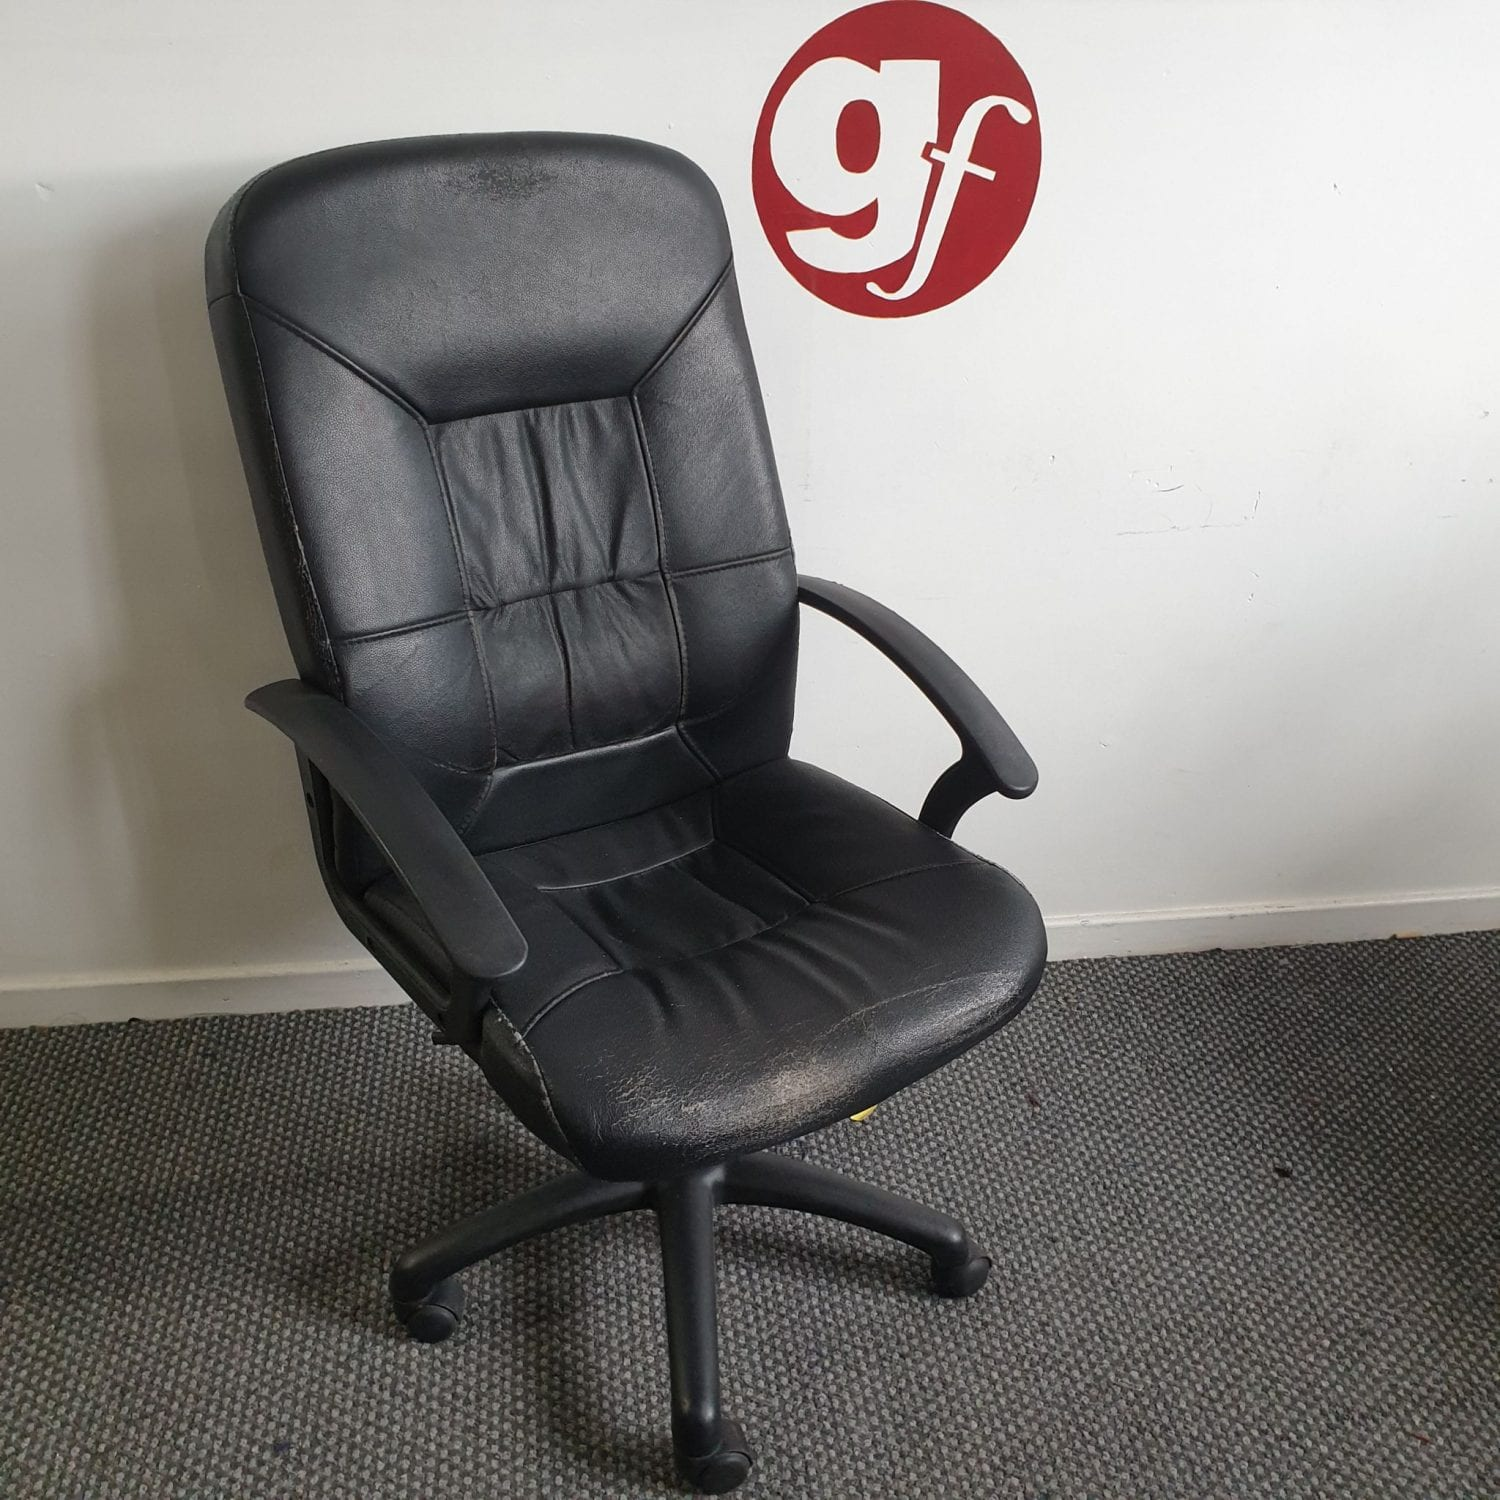 Office Chair in Stockport